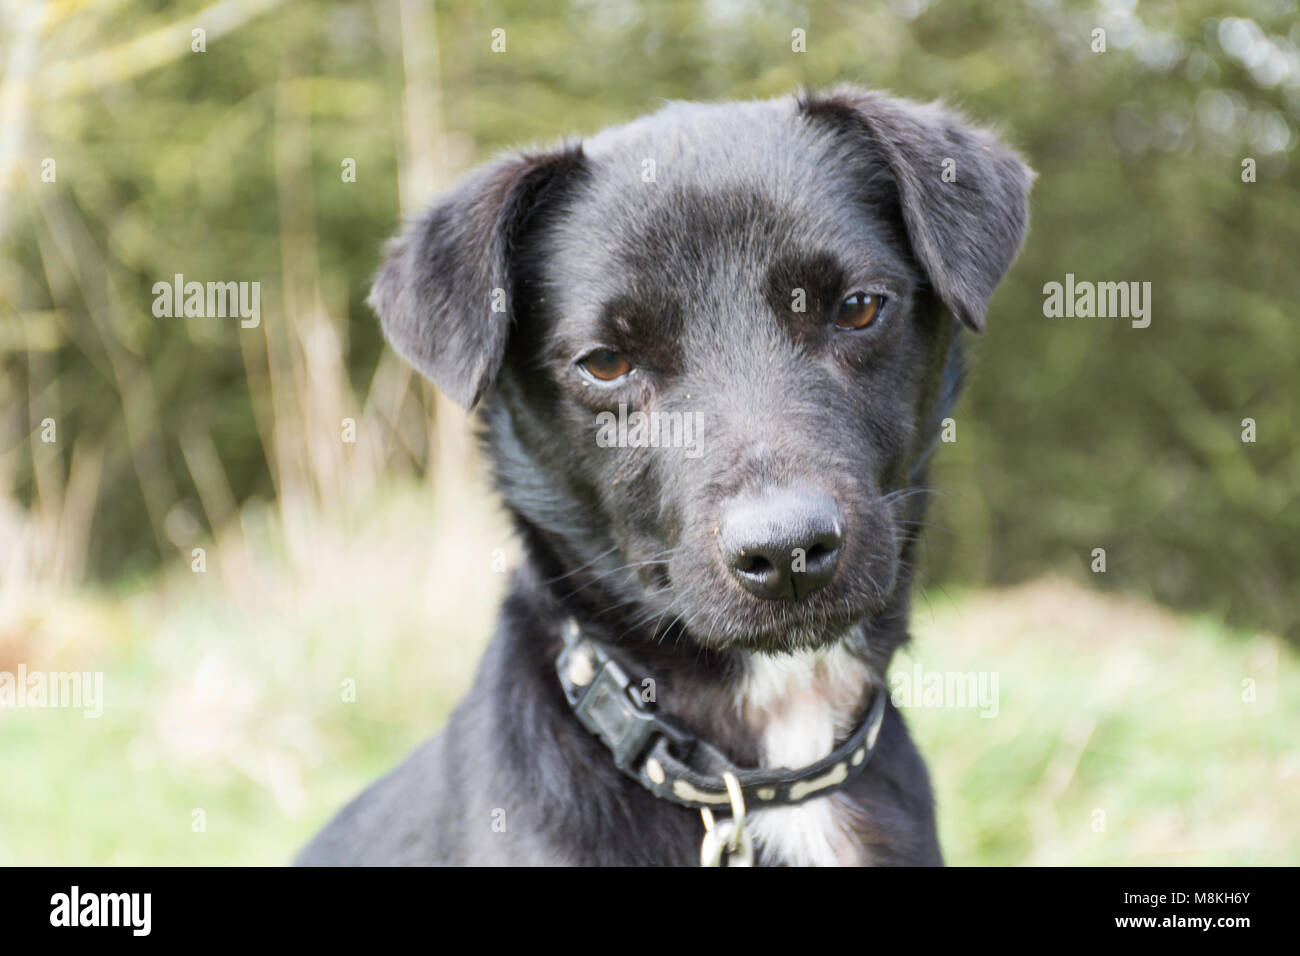 a black terrier type dog looking at camera - Stock Image